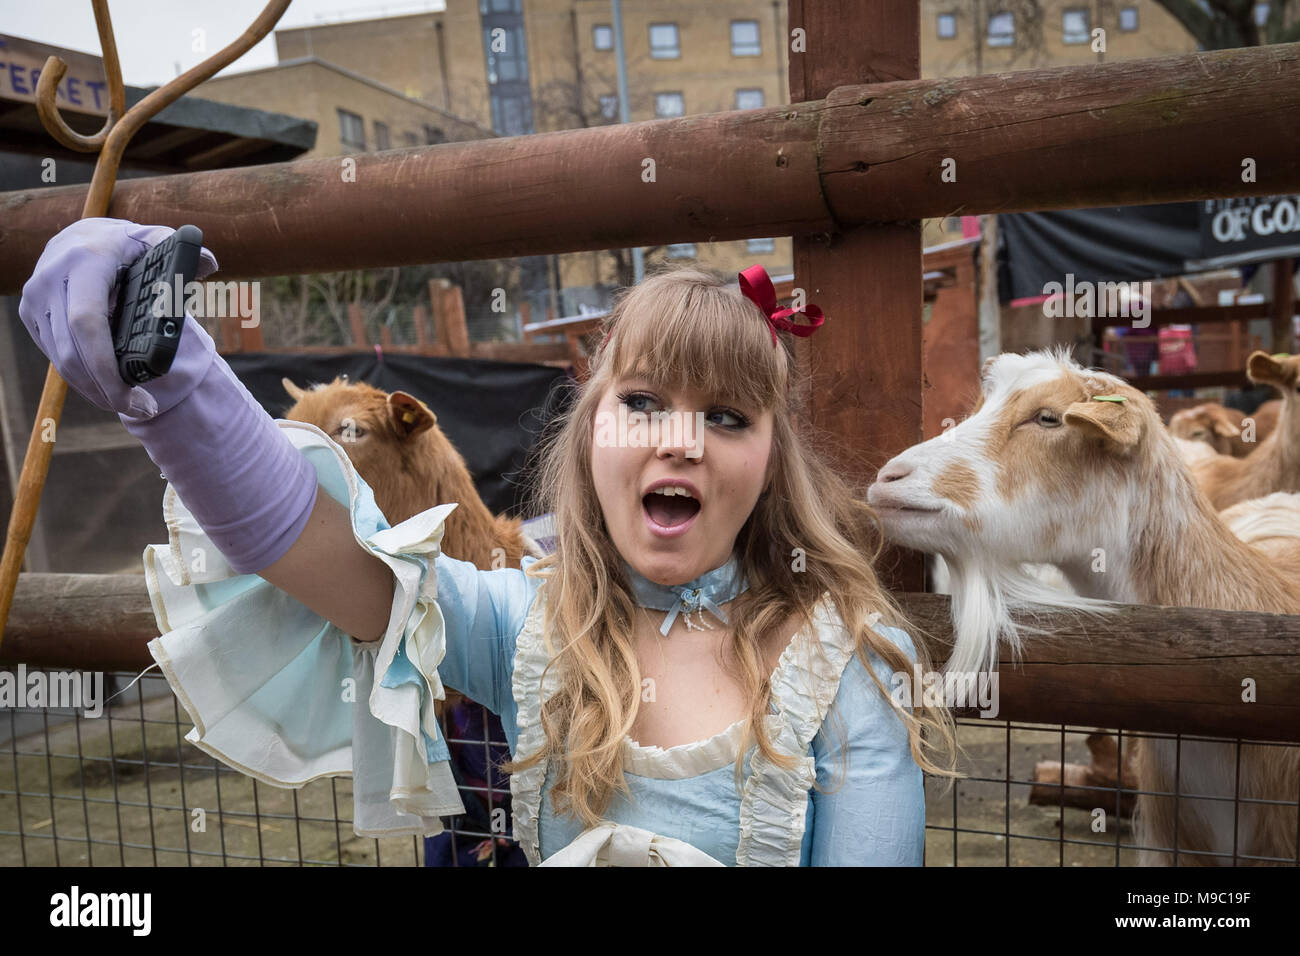 London, UK. 24th March, 2018. Little Bo-Peep takes selfie photos with some of the contenders just before the main race at The 10th Annual Oxford vs Cambridge Goat Race, Spitalfields City Farm. Credit: Guy Corbishley/Alamy Live News - Stock Image